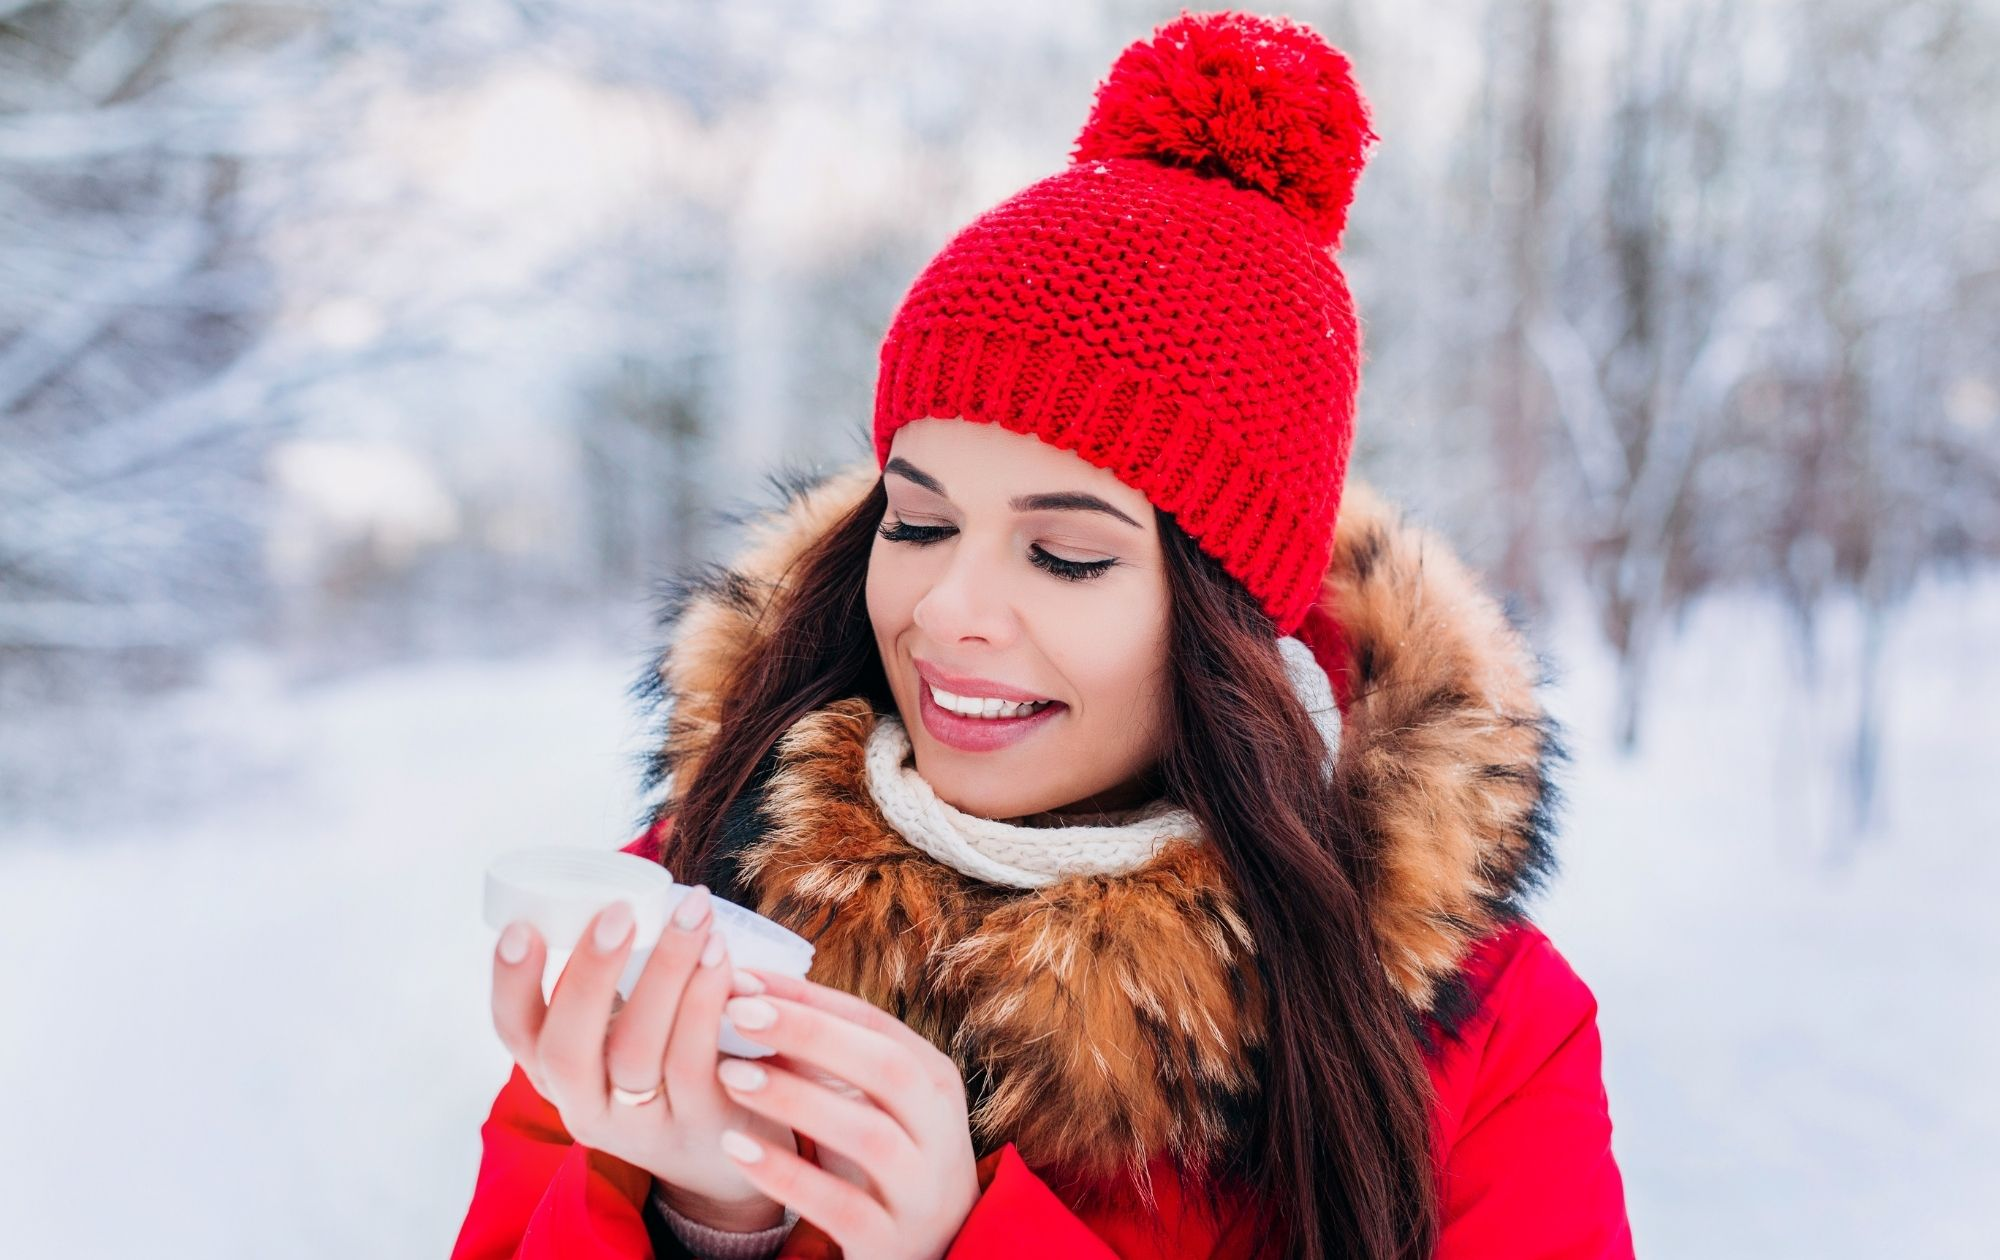 Best CBD Products for Your Skin (Winter Edition)